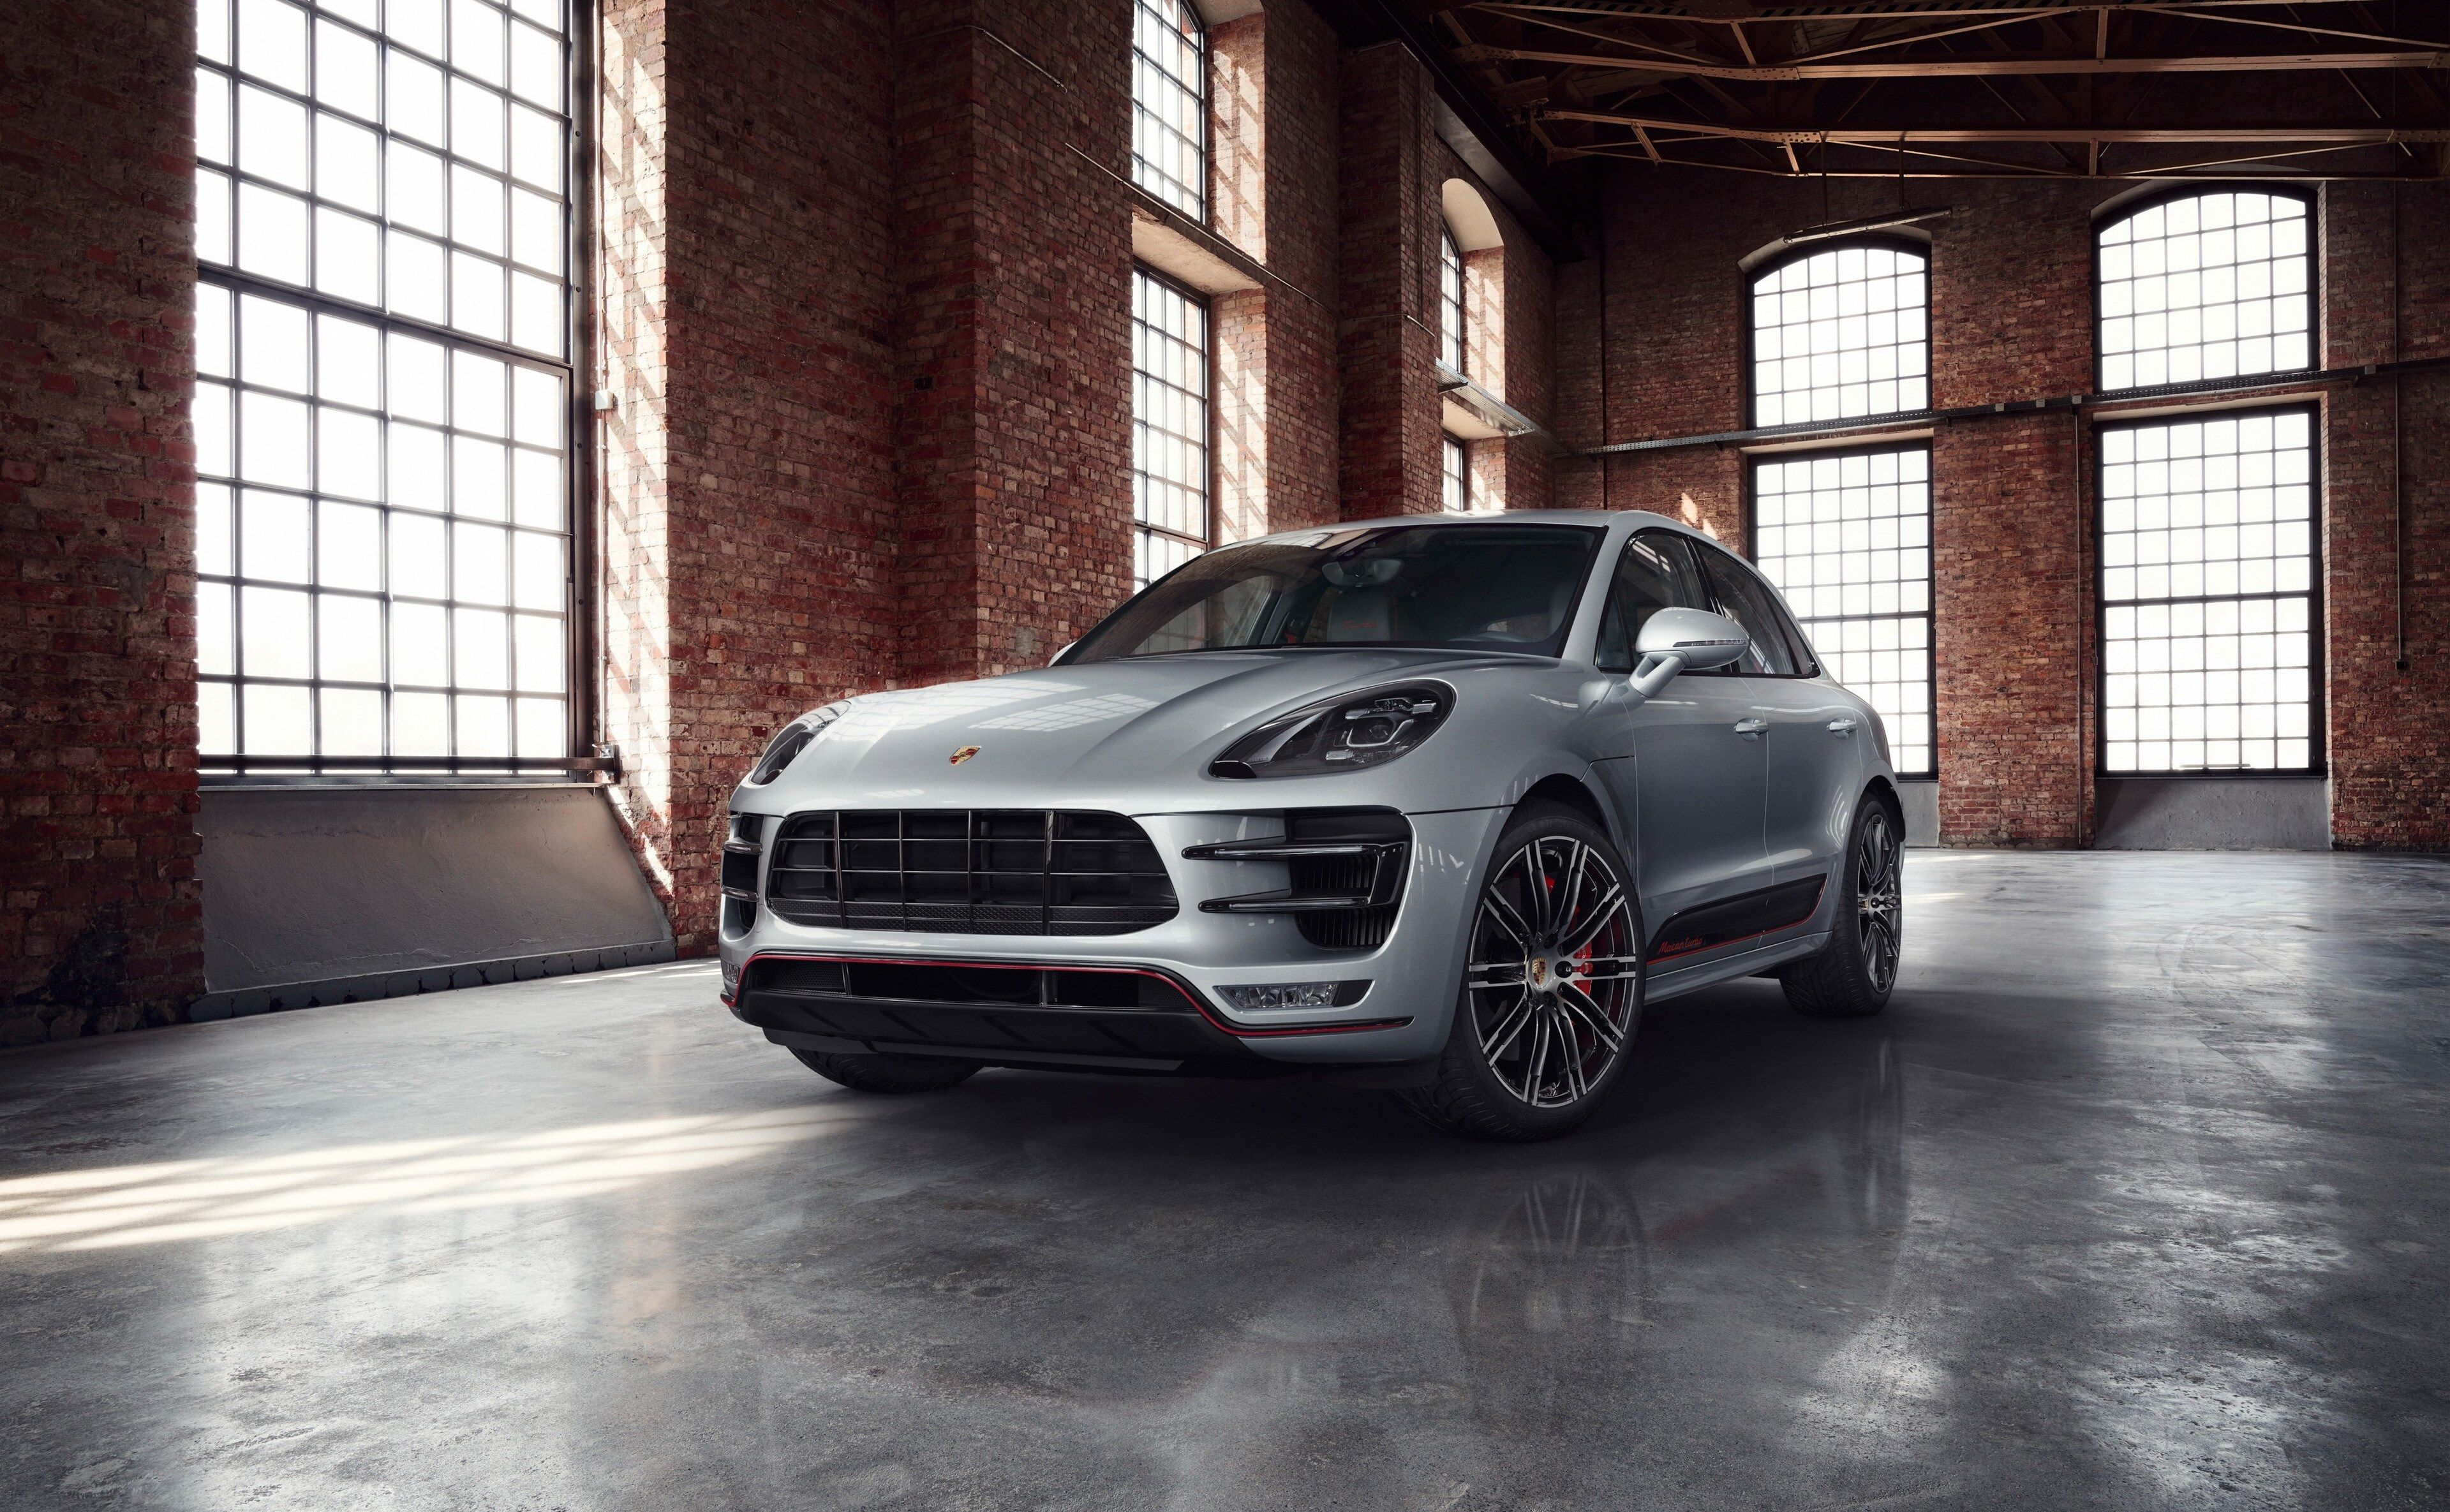 3840x2370 Porsche Macan Turbo 4k Hd Wallpaper In Desktop Porsche